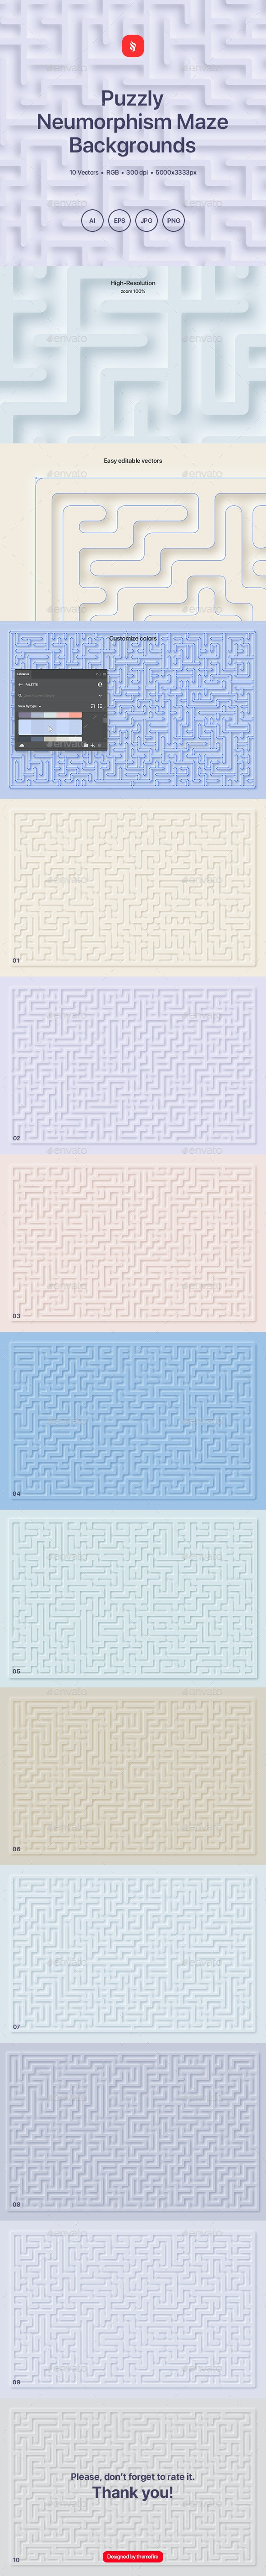 Puzzly - Neumorphism Maze Backgrounds - Abstract Backgrounds